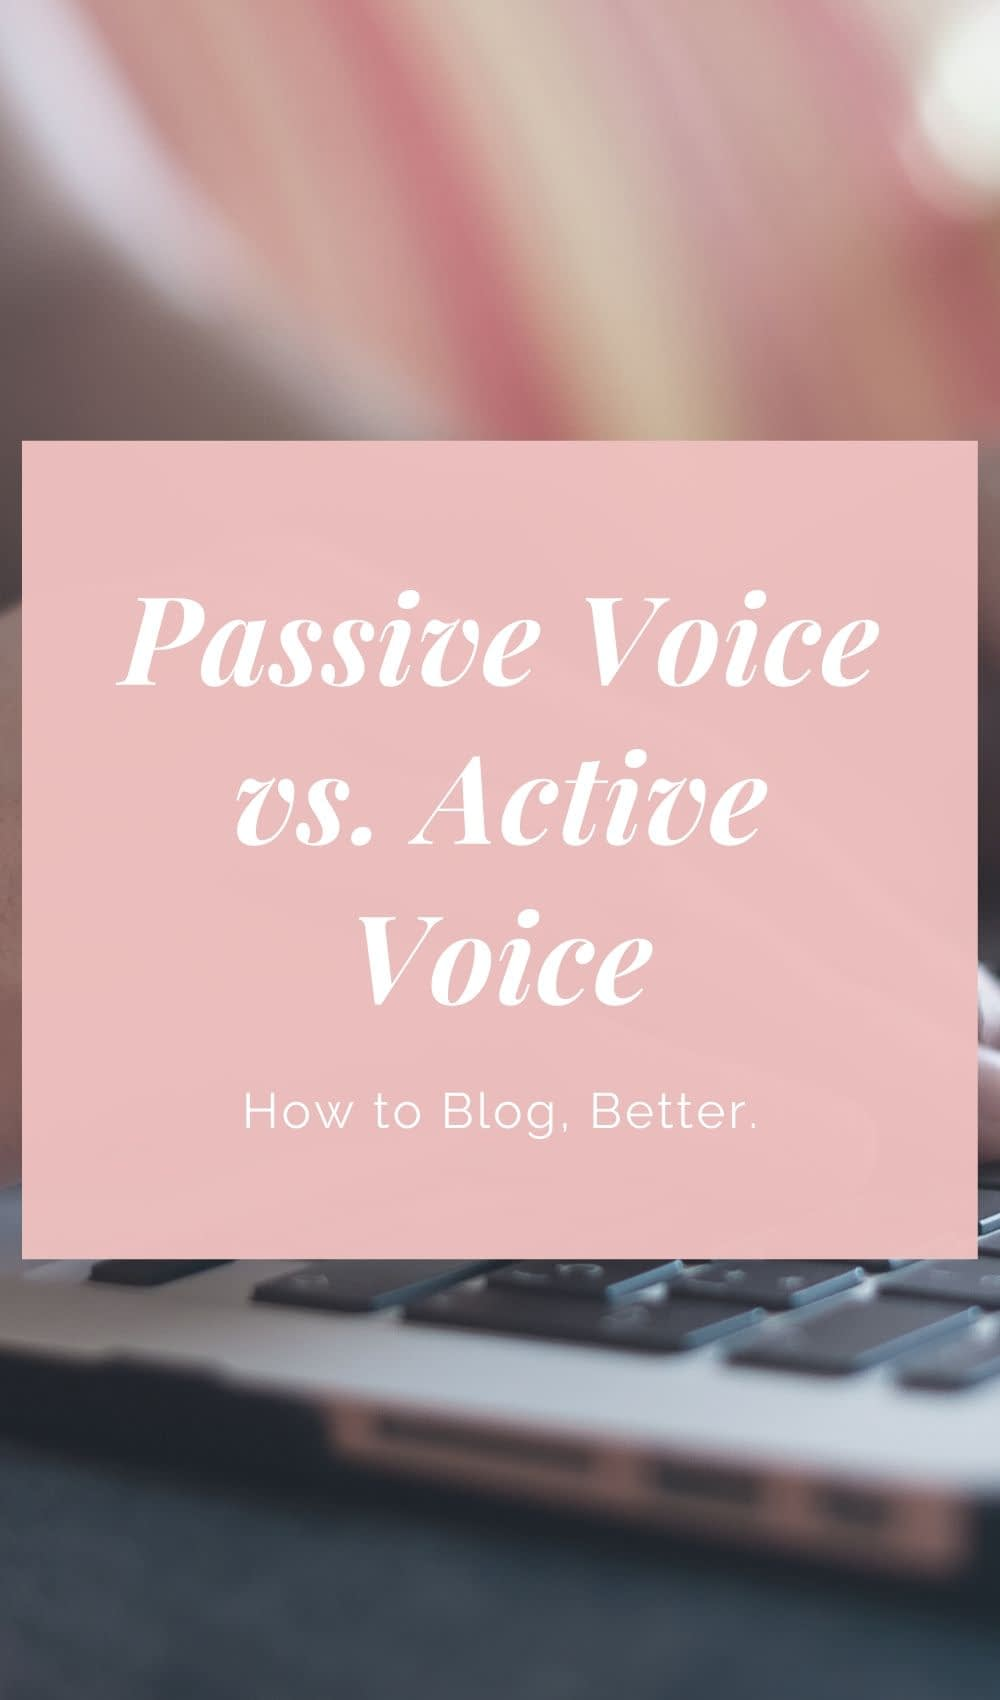 Are you guilty of using passive voice when writing articles, blog posts or other text content for your website? While high-quality content can lead to more traffic and higher search results, you should be conscious of your writing style.